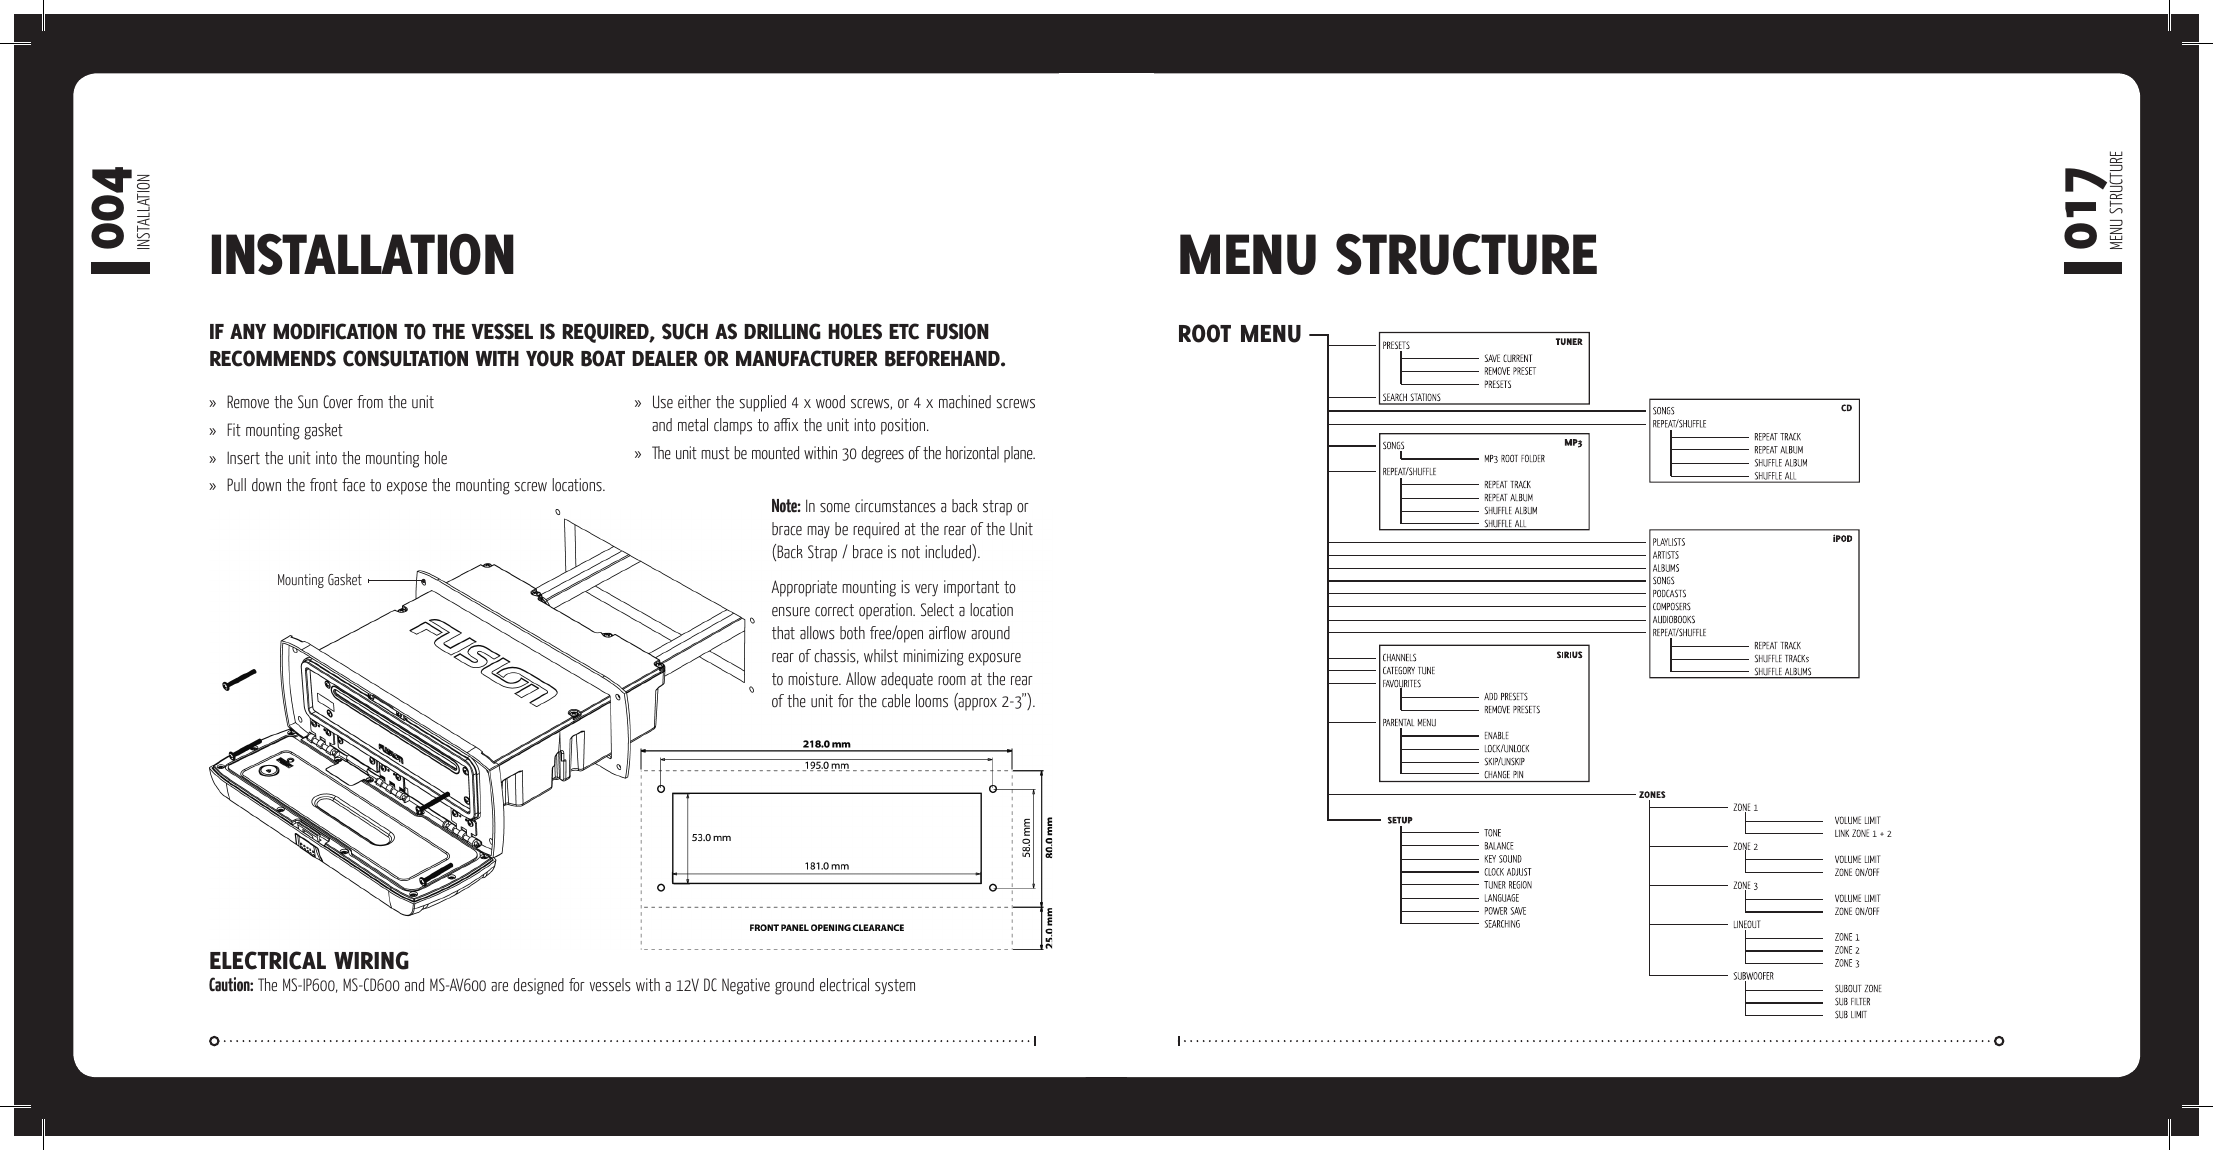 Fusion Electronics Marine Gps System Ms Av600 Users Manual 7474 Pin Diagram Page 6 Of 12